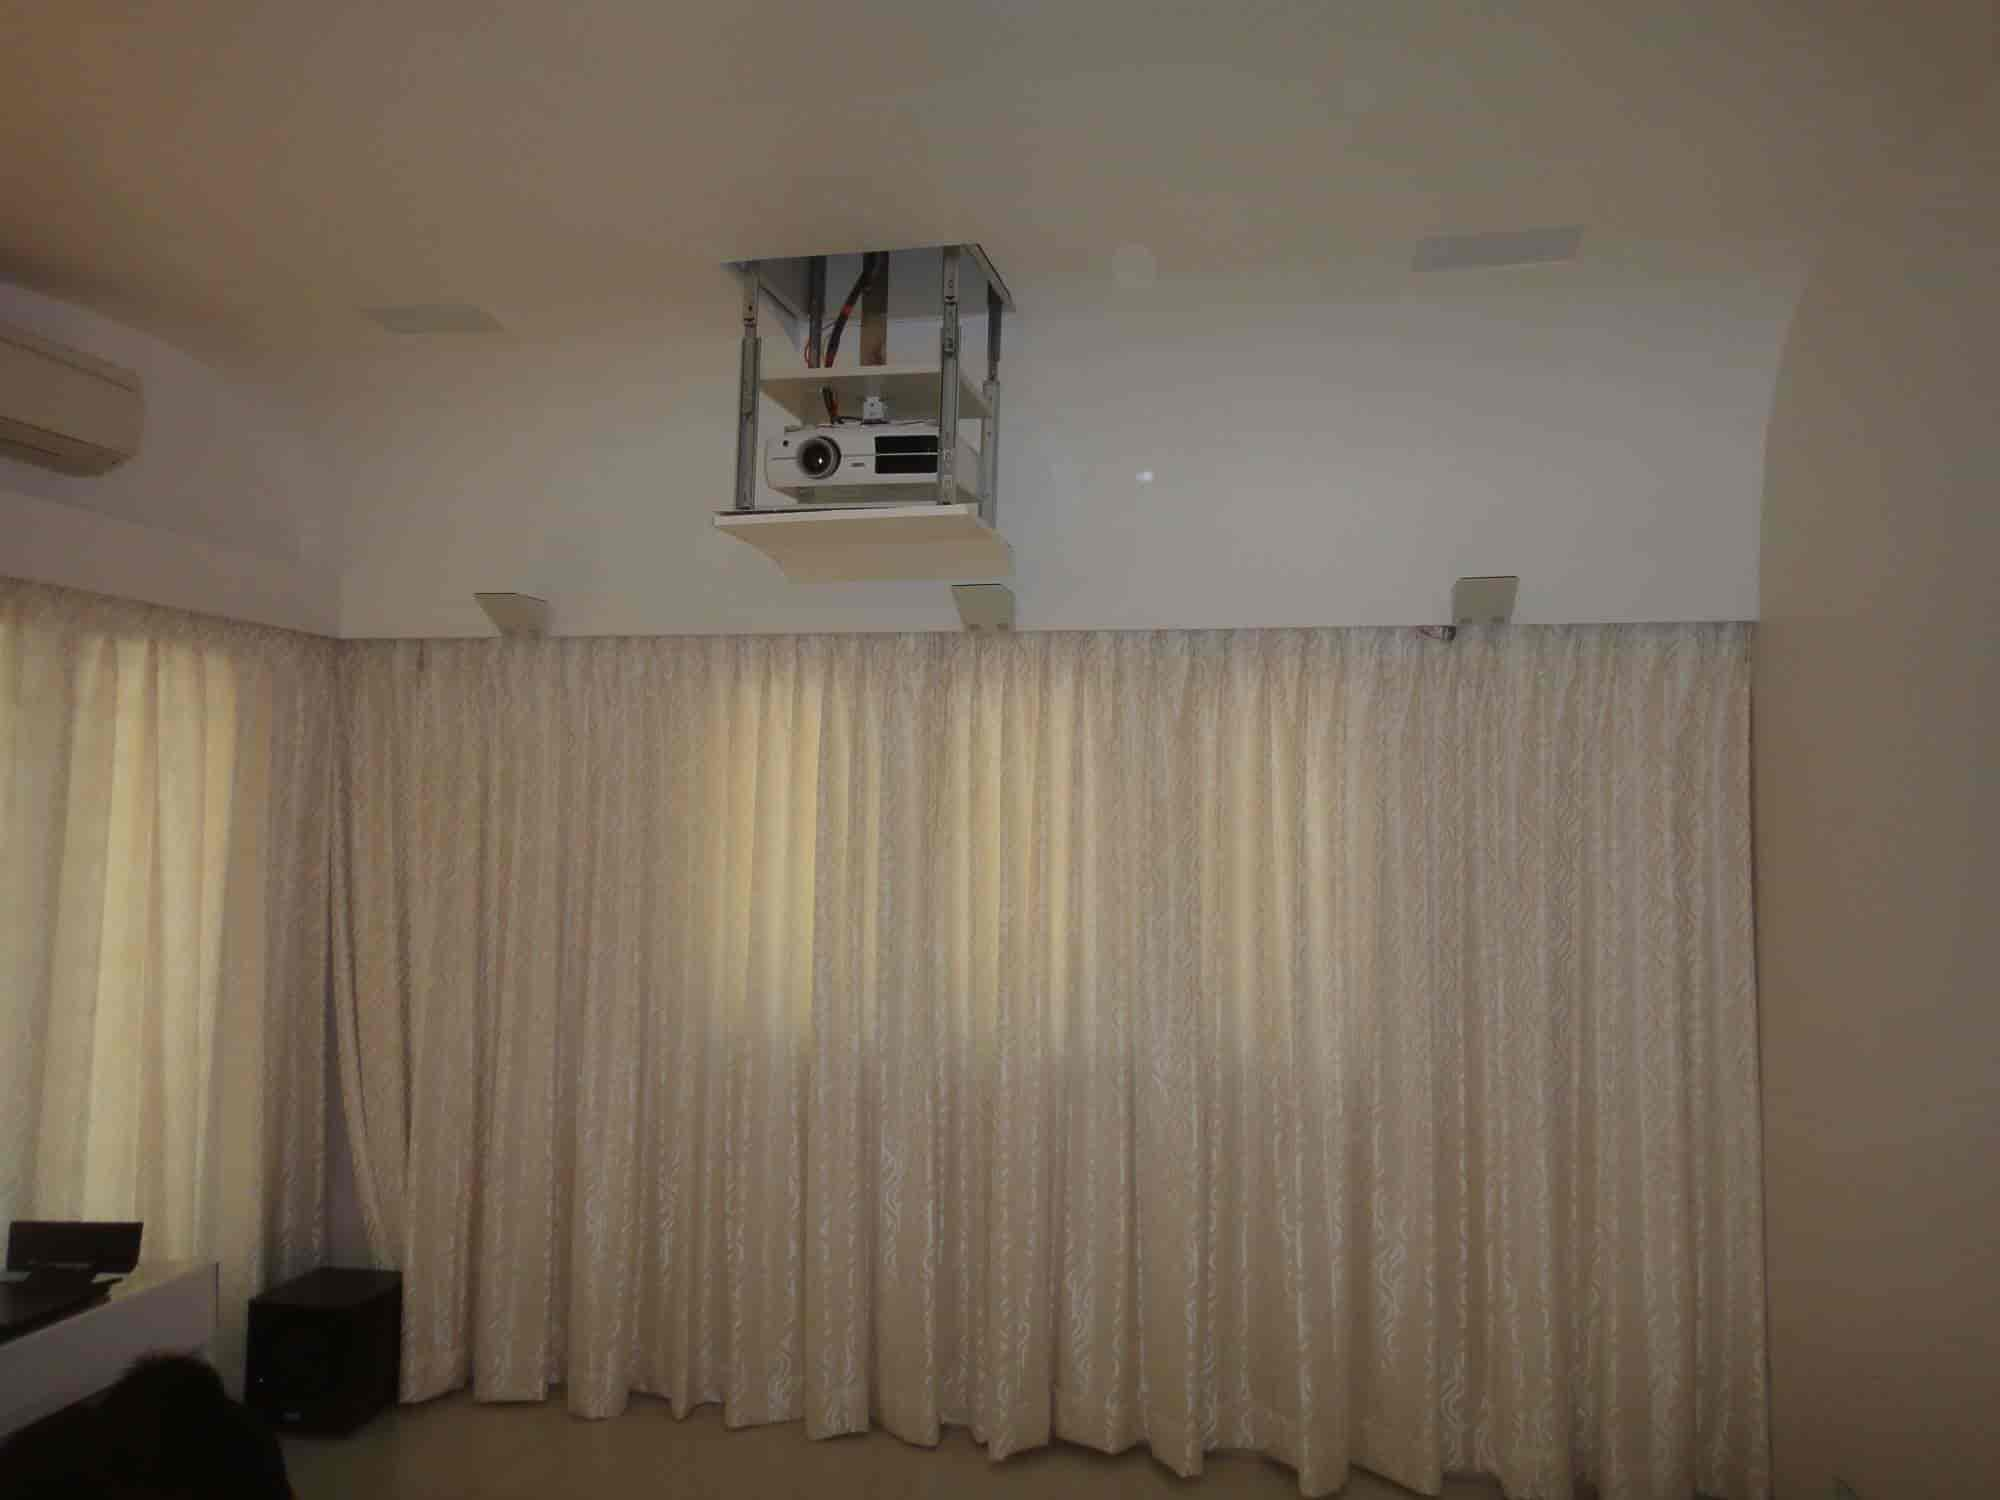 Dni Home Theatre, Bellandur   Home Theatre System Dealers In Bangalore    Justdial